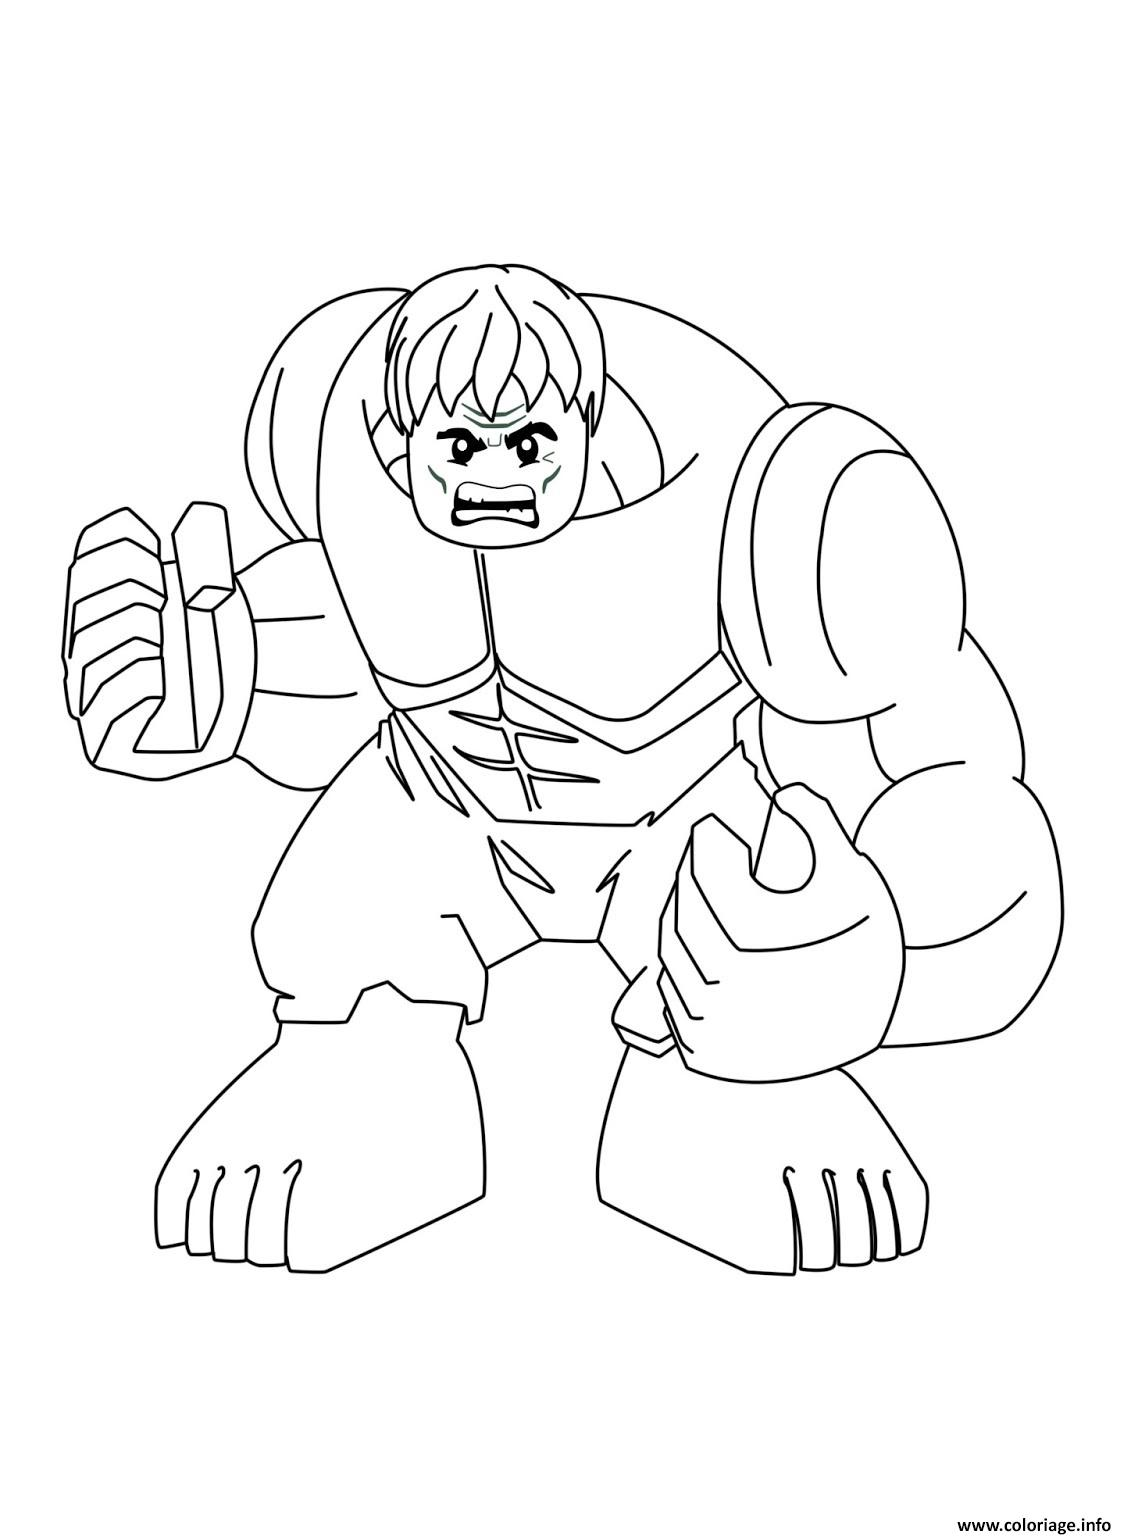 Lego Iron Man Spiderman Coloring Page